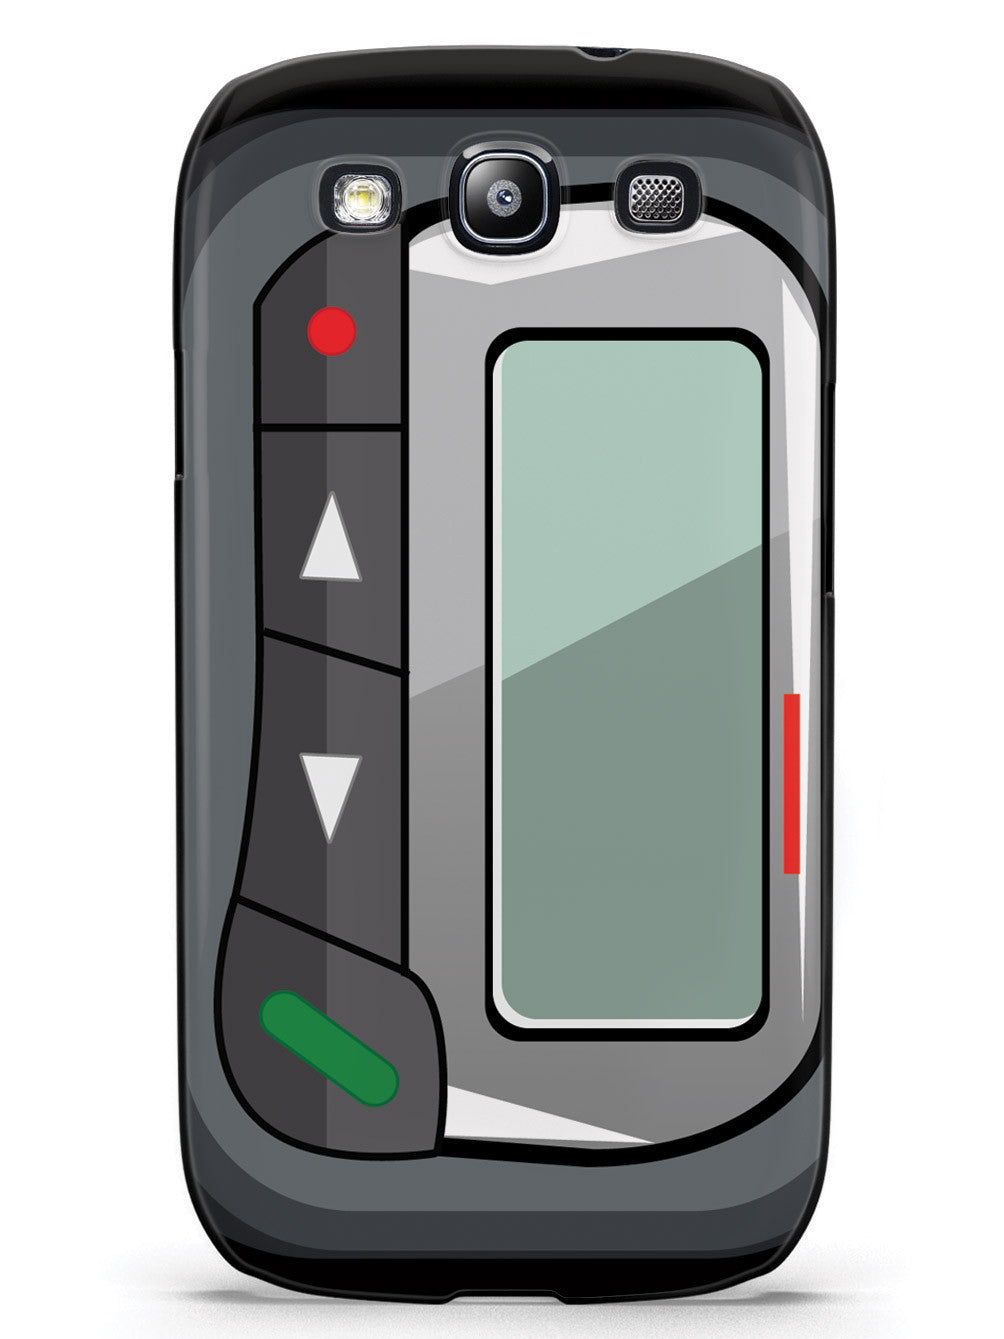 Pager (Beeper) - Black Case